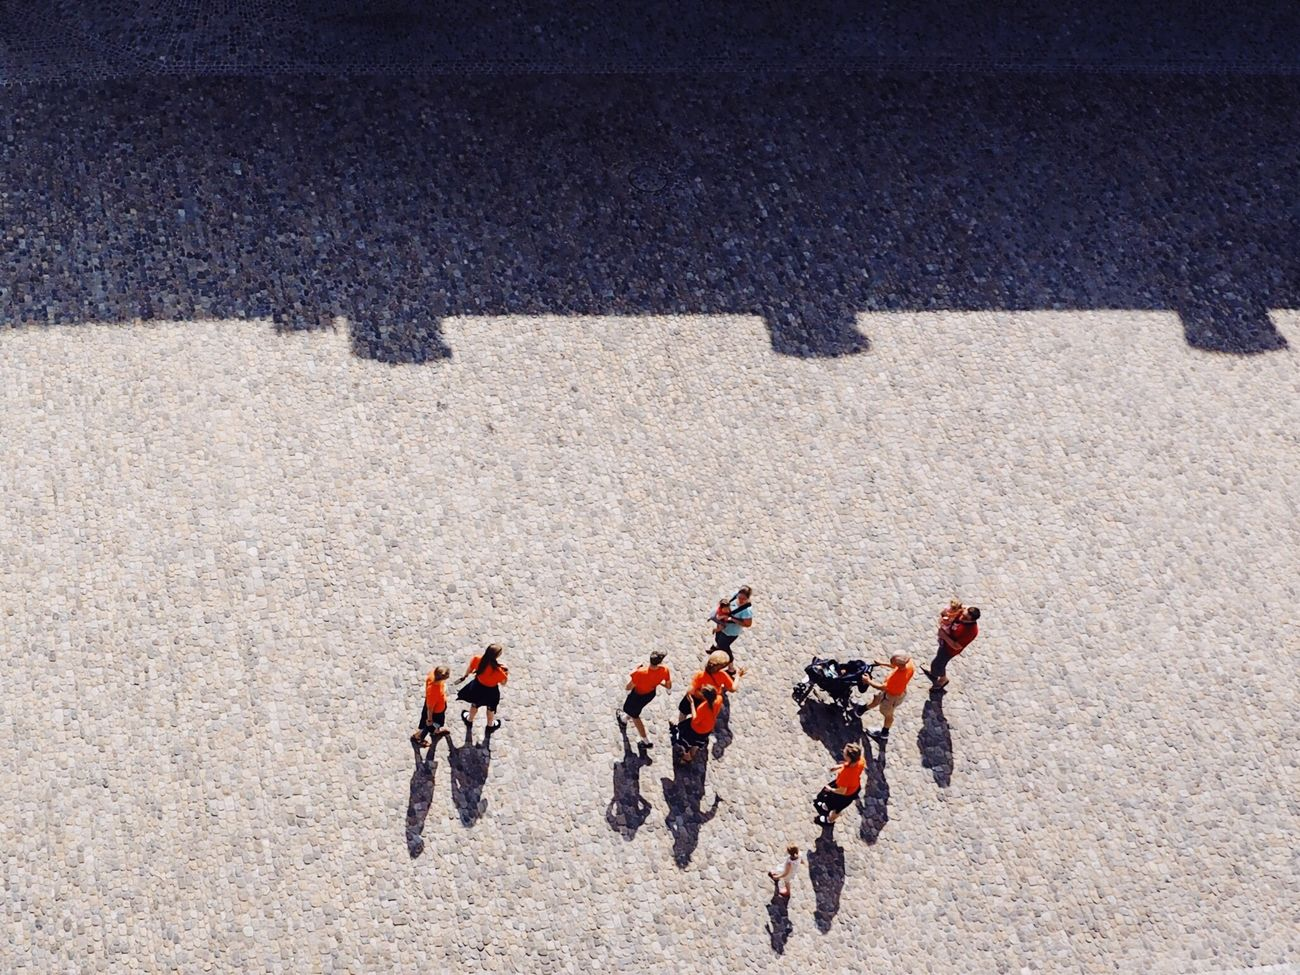 High Angle View Outdoors Togetherness Large Group Of People Birds Eye View View From Above Looking Down Minimalism Minimalobsession Flying High